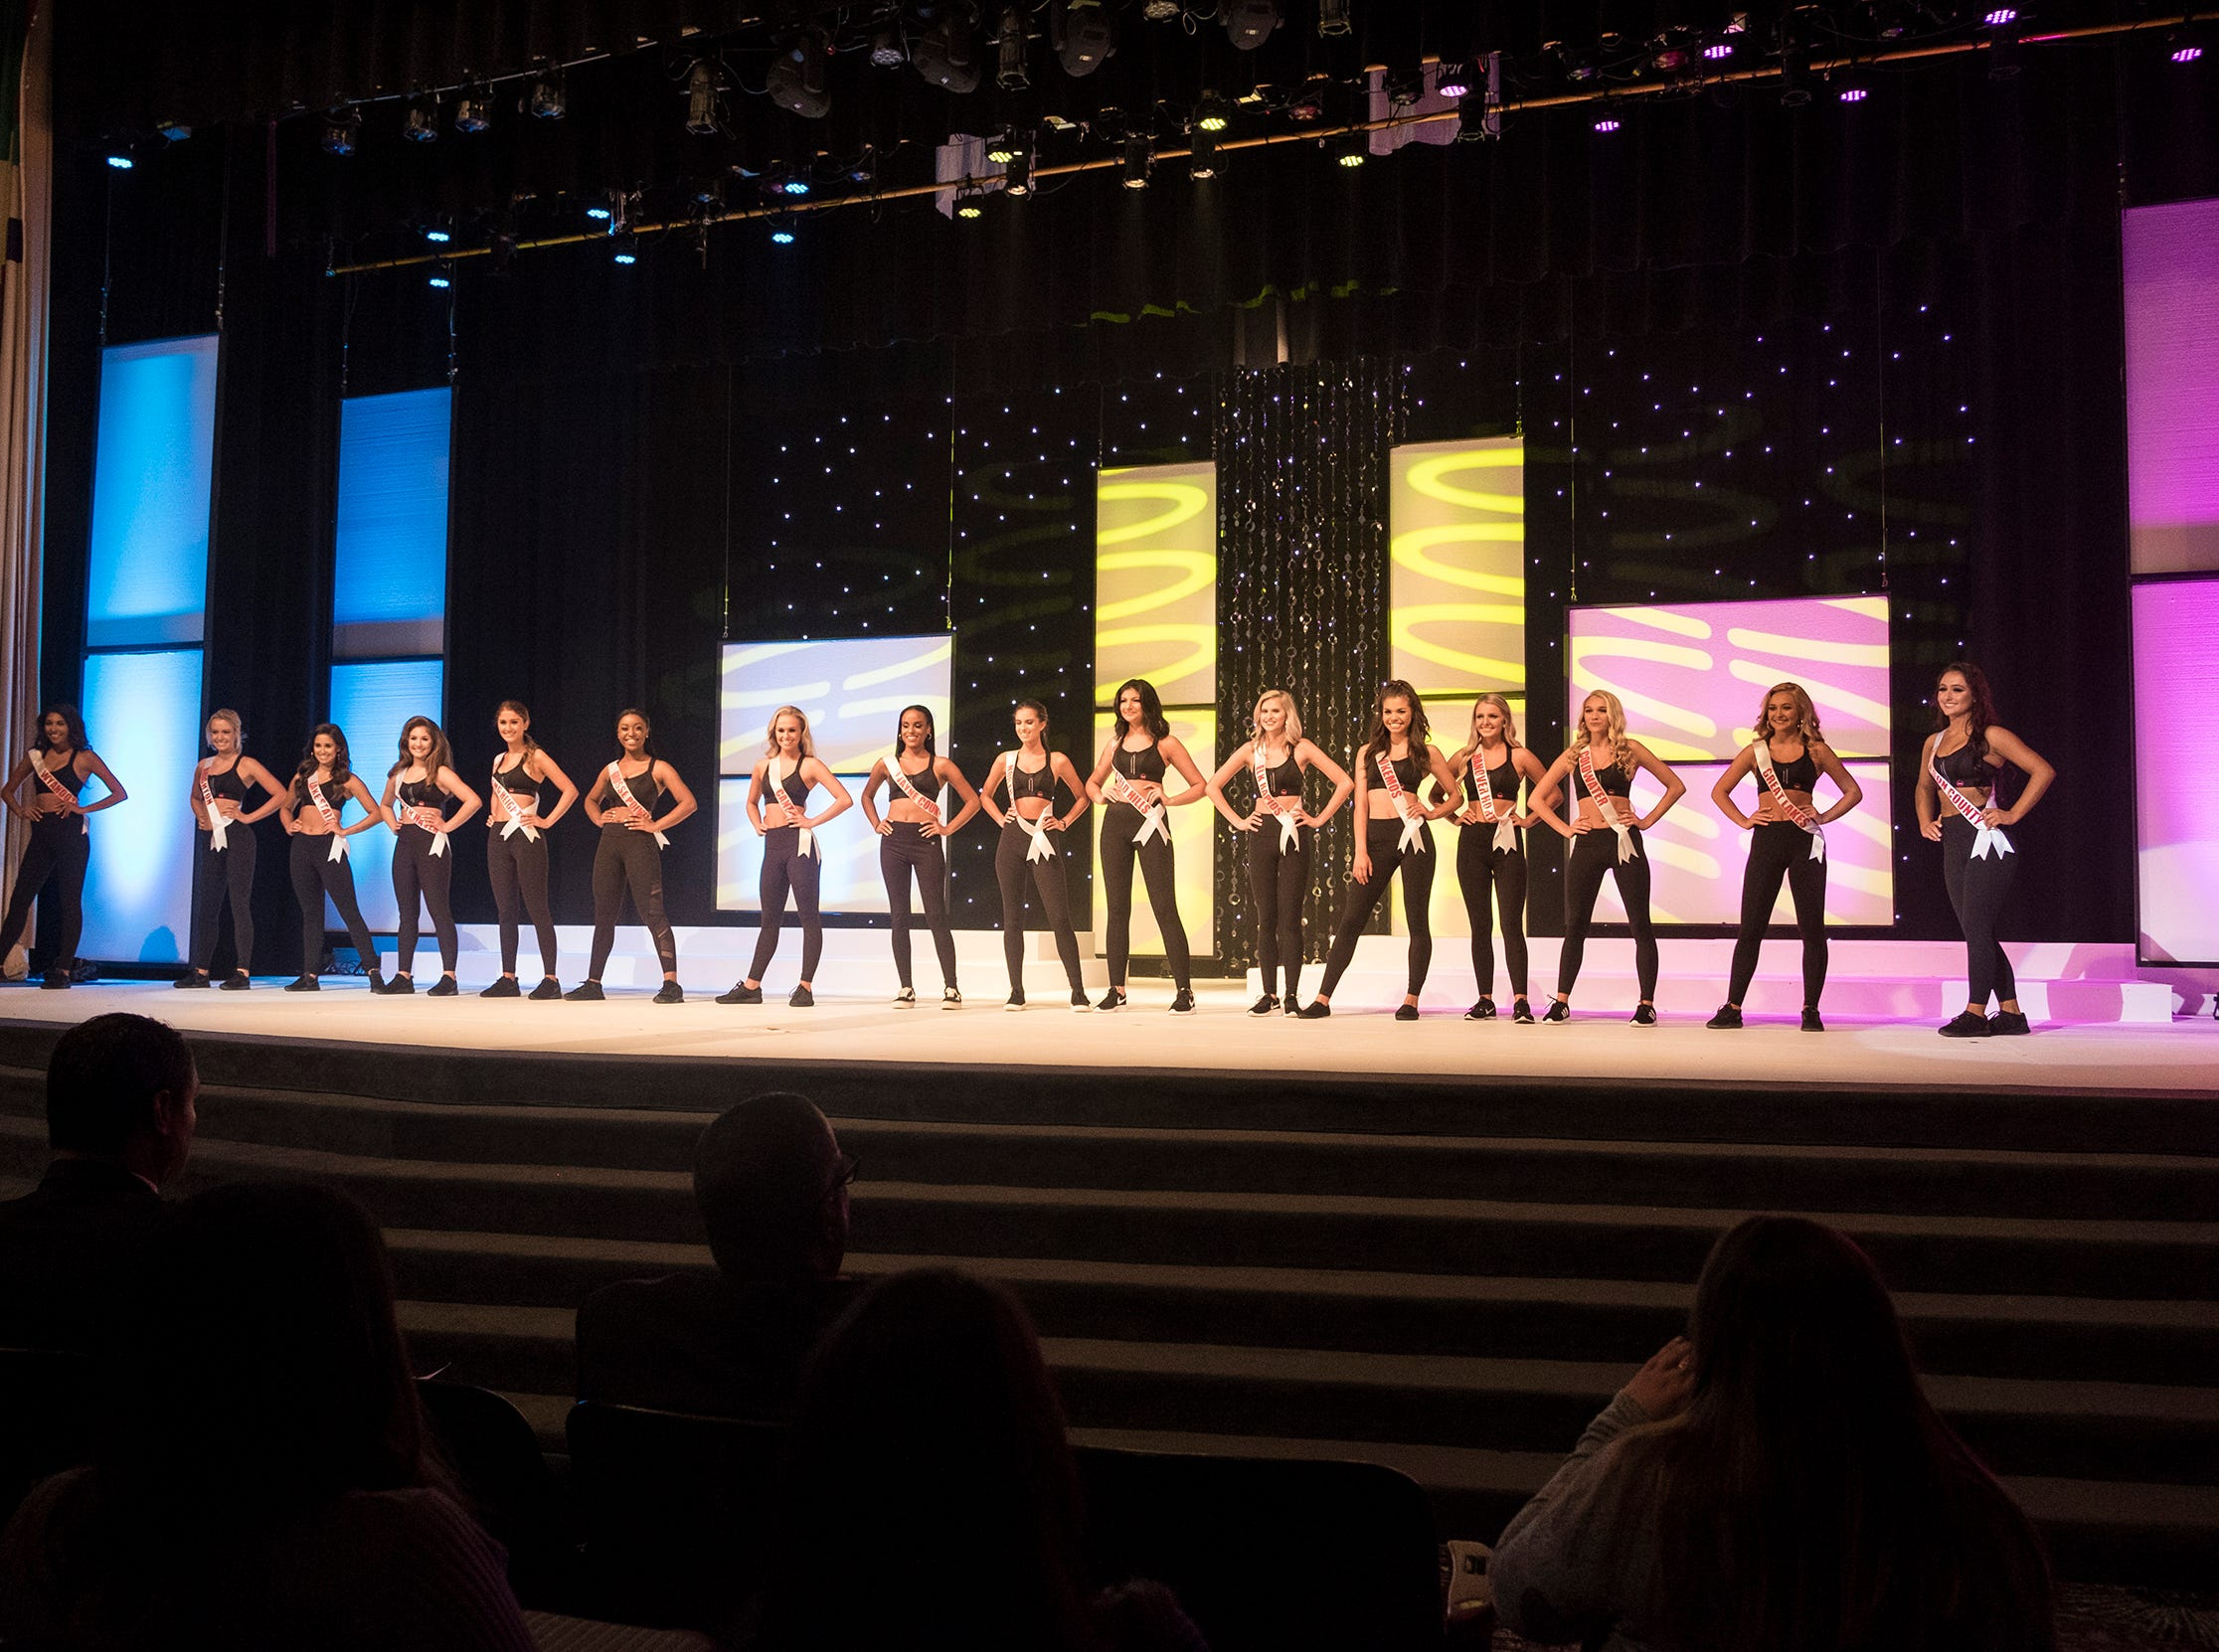 The 16 semifinalists in the Miss Michigan Teen USA pageant line the stage after competing in the active wear portion  Saturday, Sept. 22, 2018 at McMorran Theater.